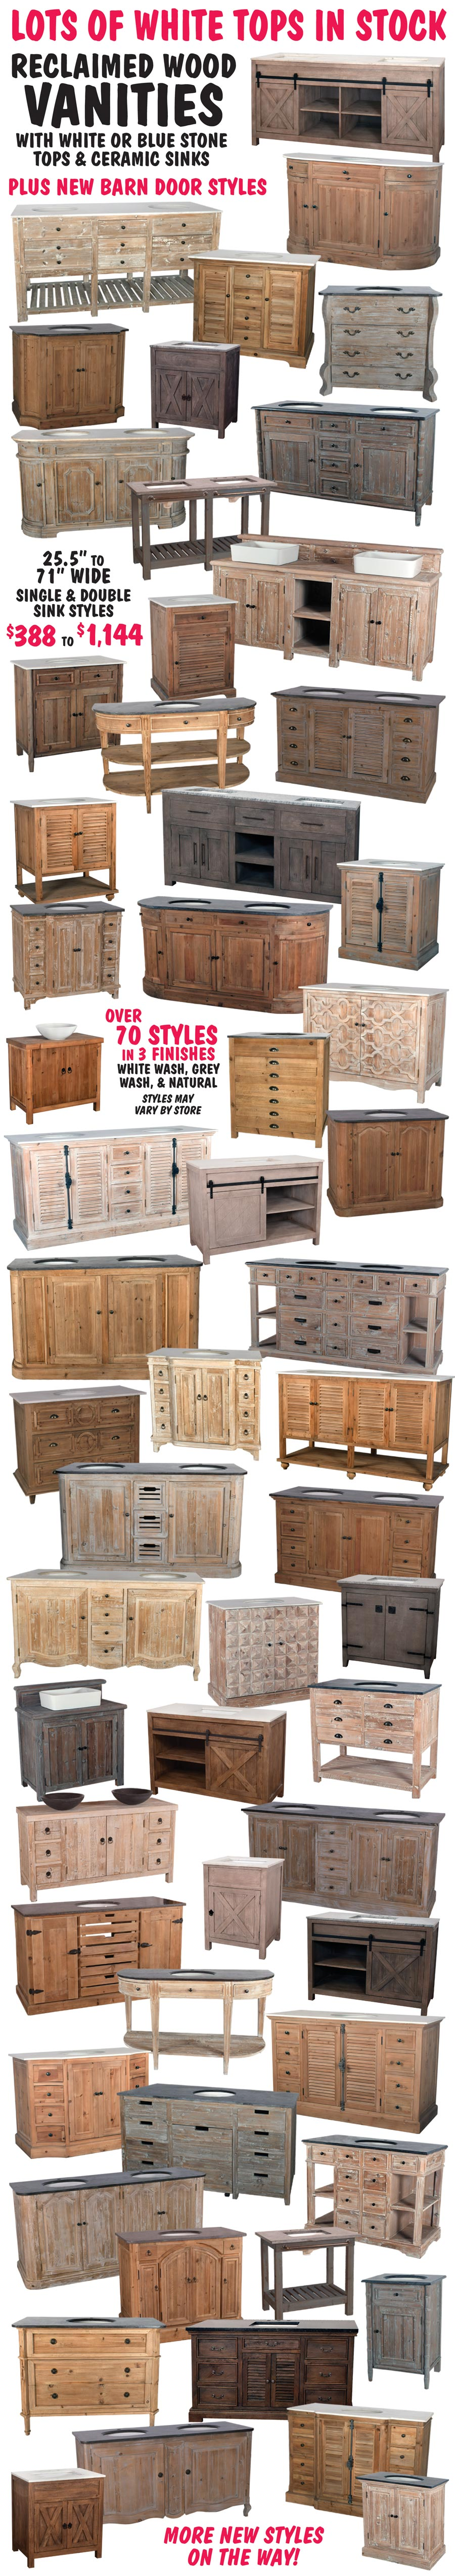 Reclaimed Wood Vanities with Marble Tops and Ceramic Sinks – starting at $388